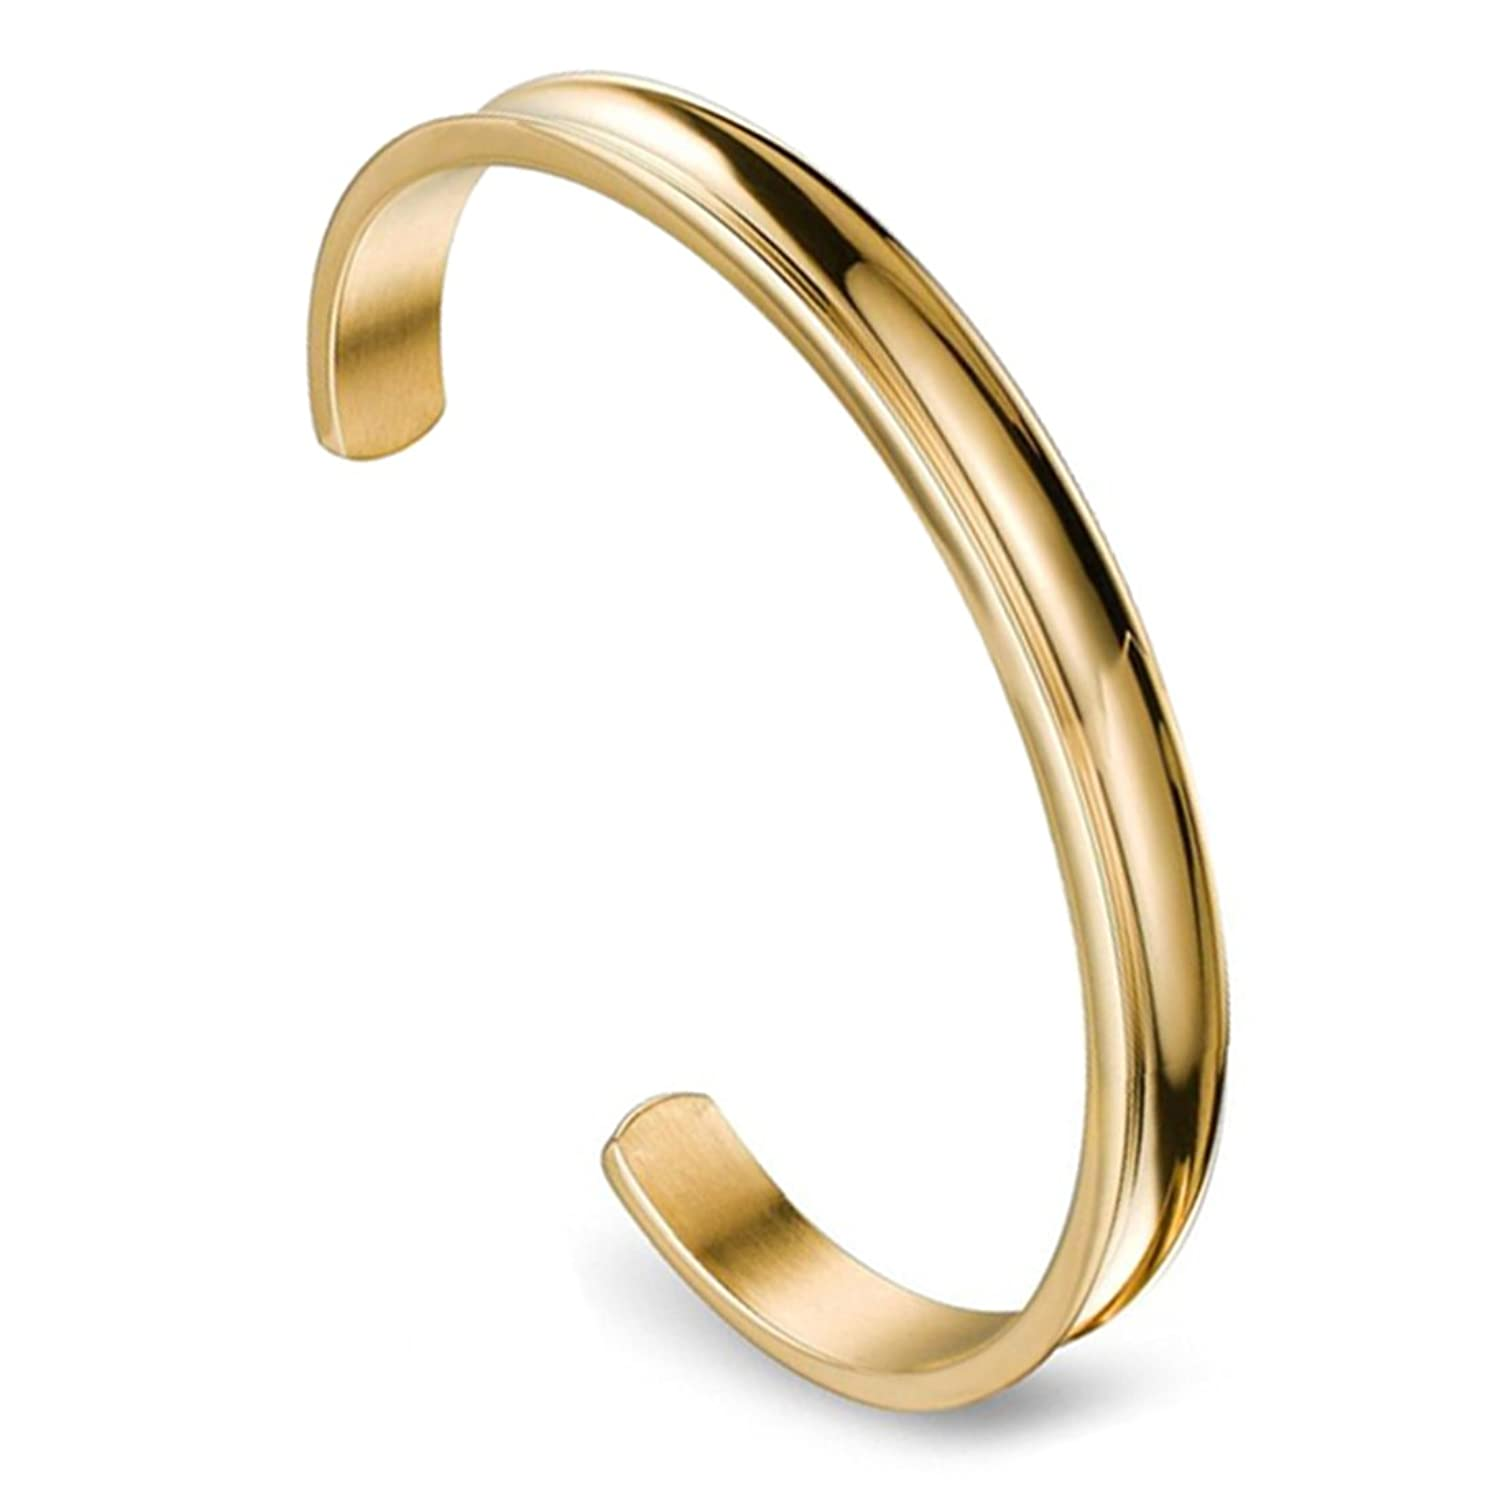 bangle exclusive ladies product bangles jewelry family kada gold jewelxy products hub traders